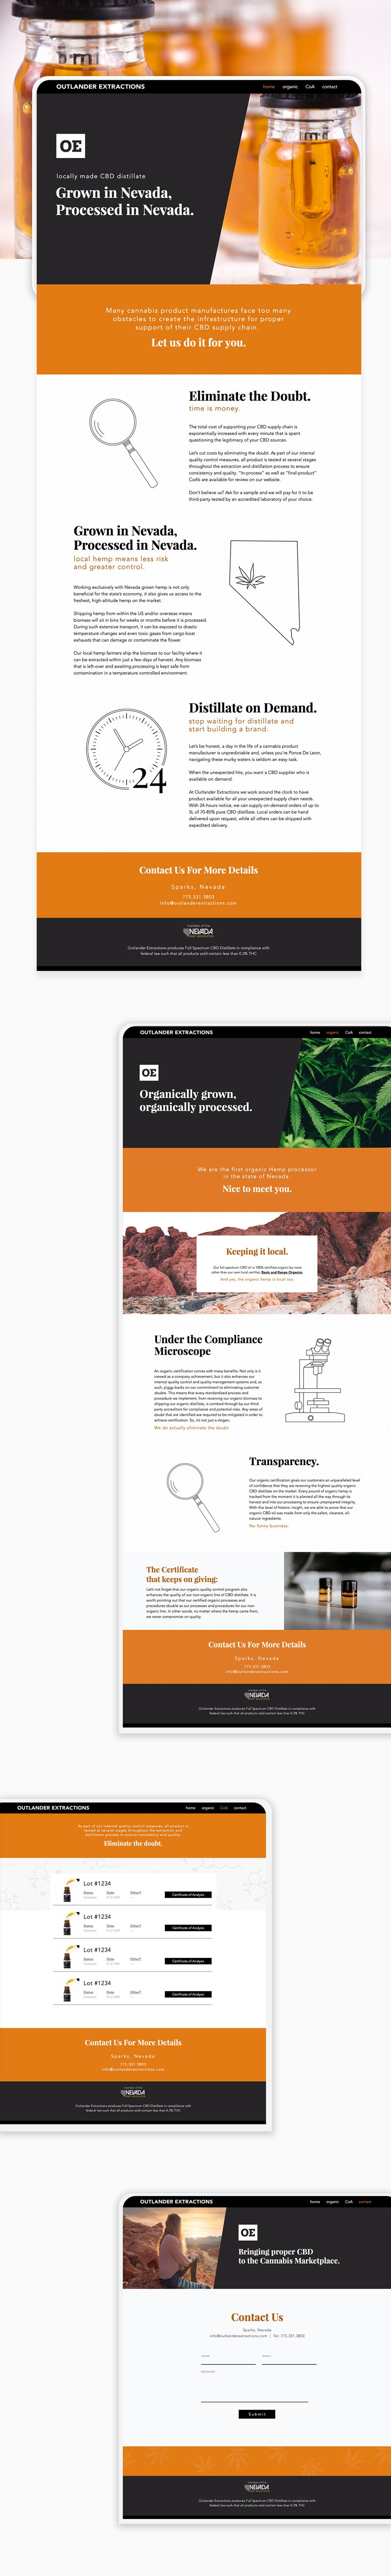 OE-Website-Mockup.jpg